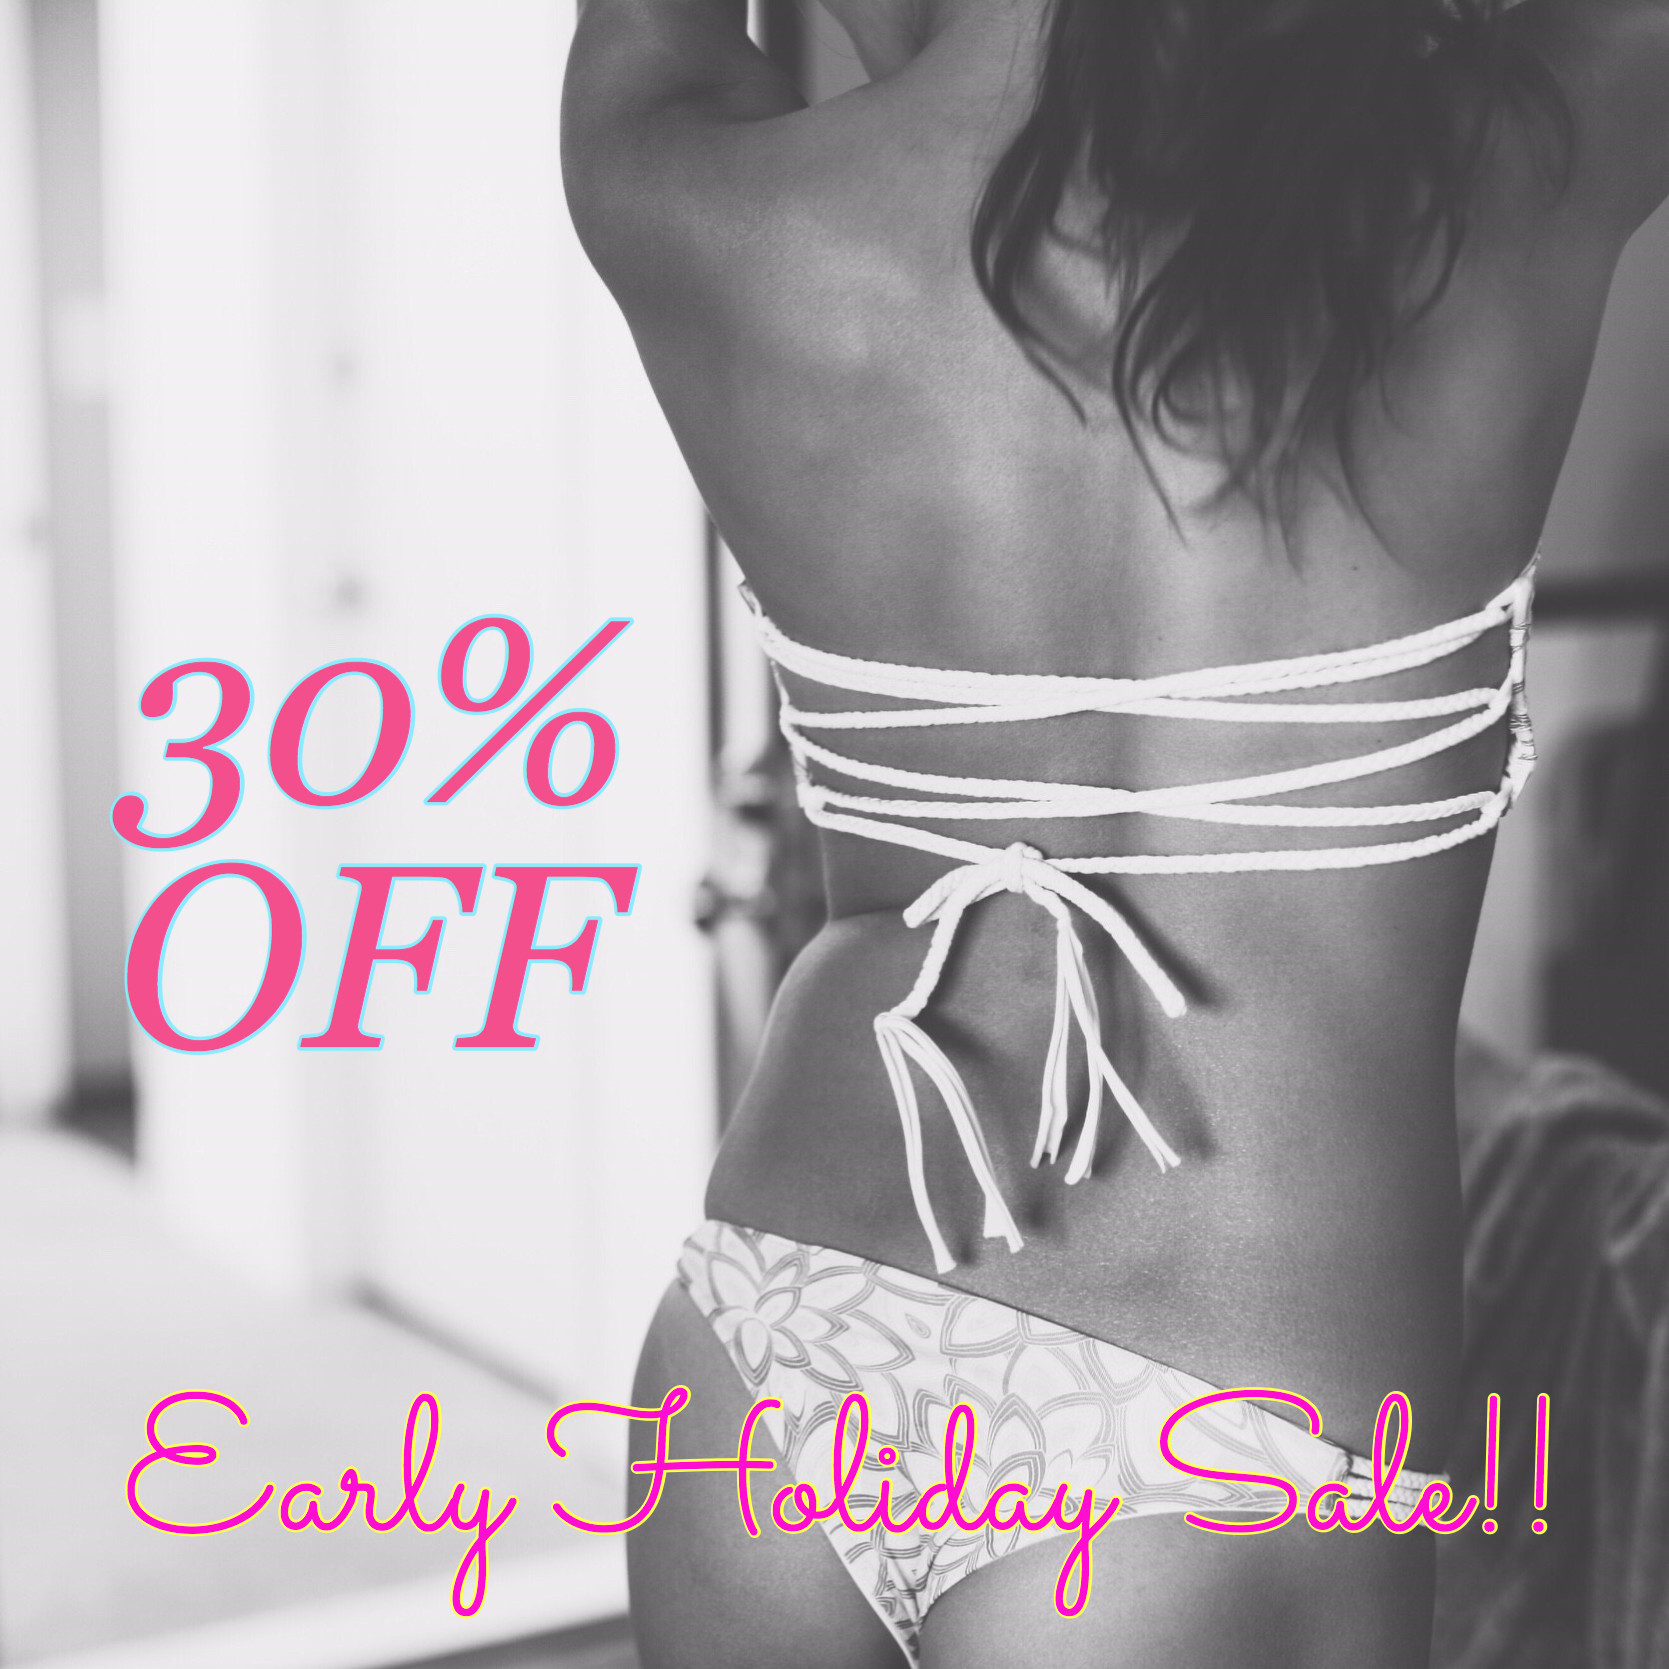 Early Holiday Sale!! GET 30% OFF!!